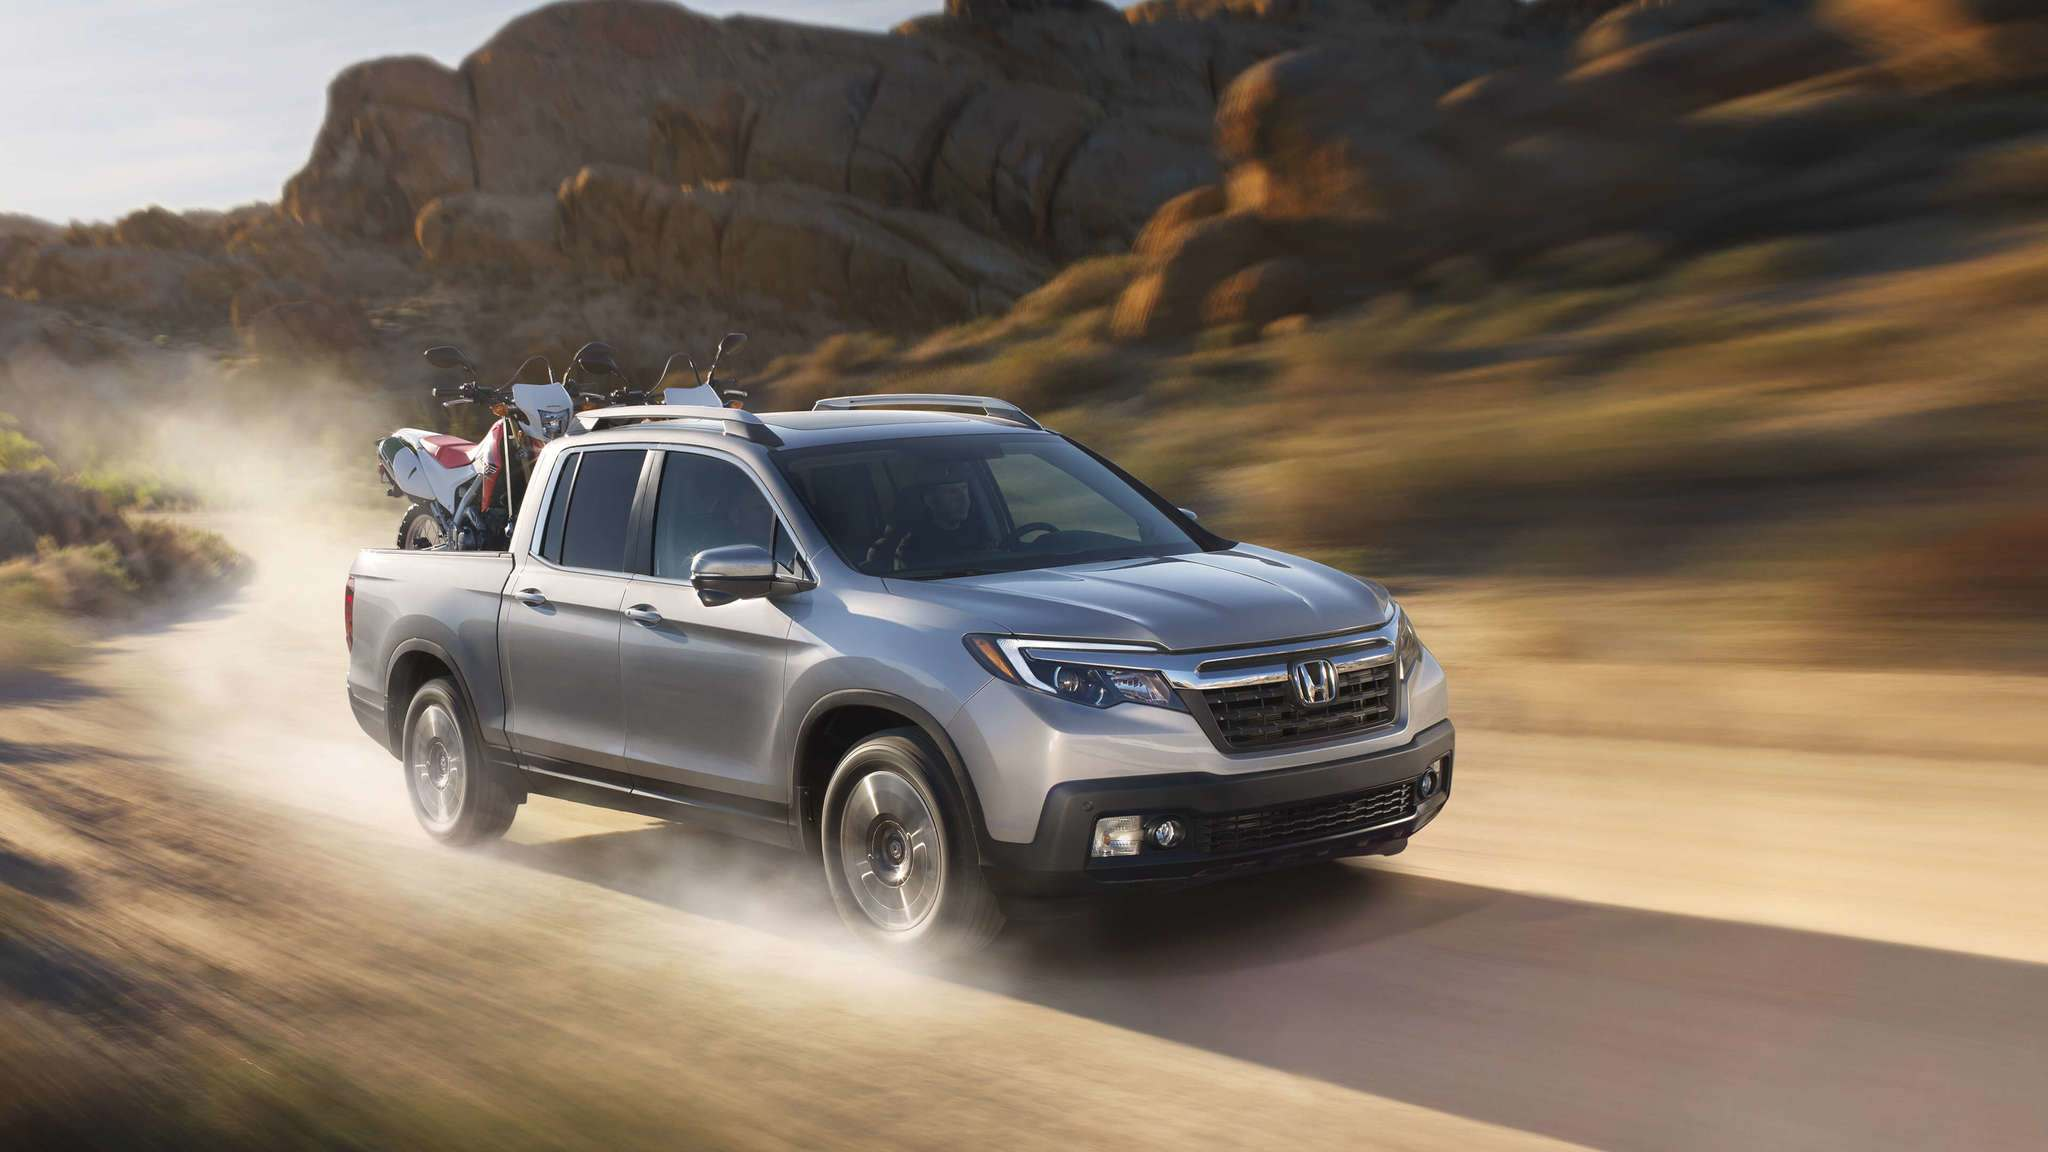 HondaThe 2019 Honda Ridgeline comes standard with a 3.5-litre V-6 engine and puts out 280 horsepower and 262 pound-feet of torque.